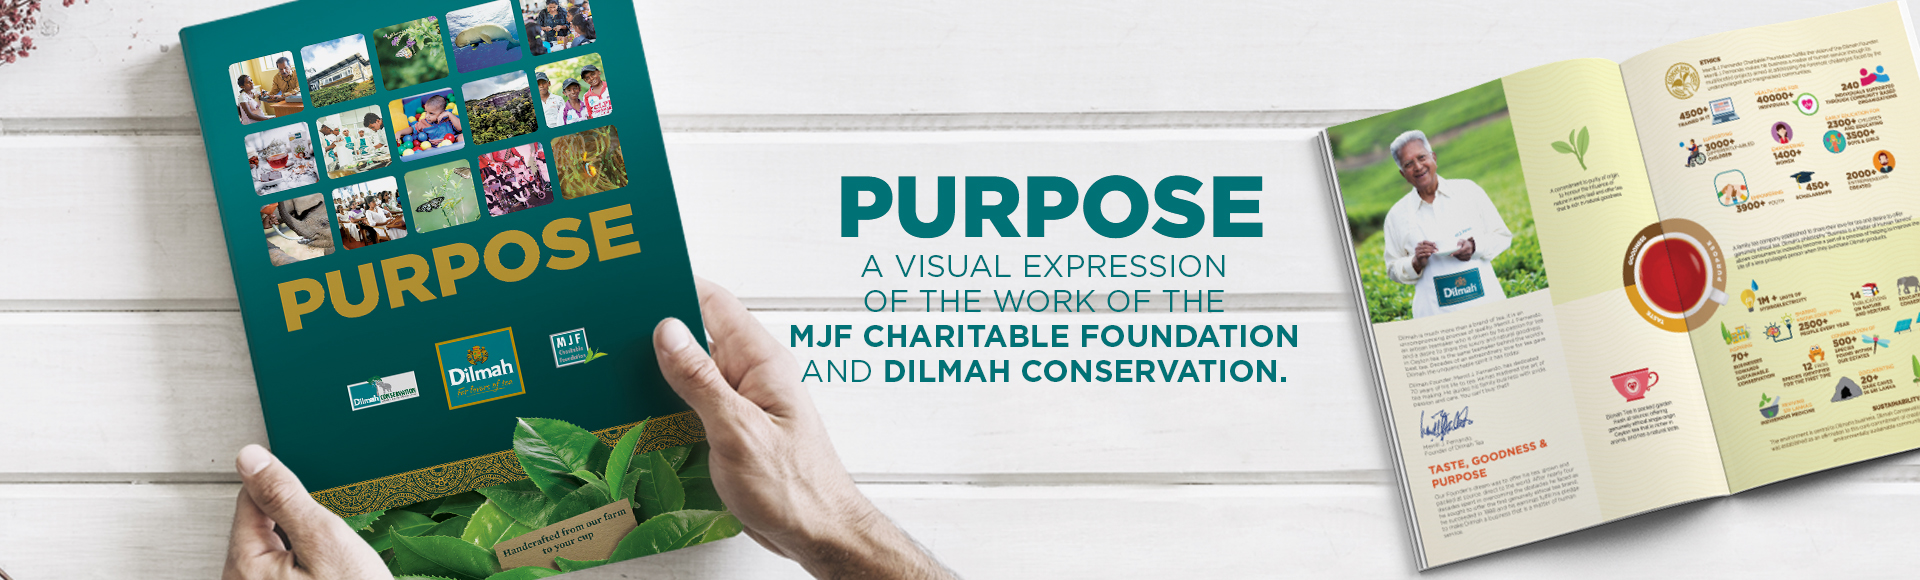 Dilmah Purpose book